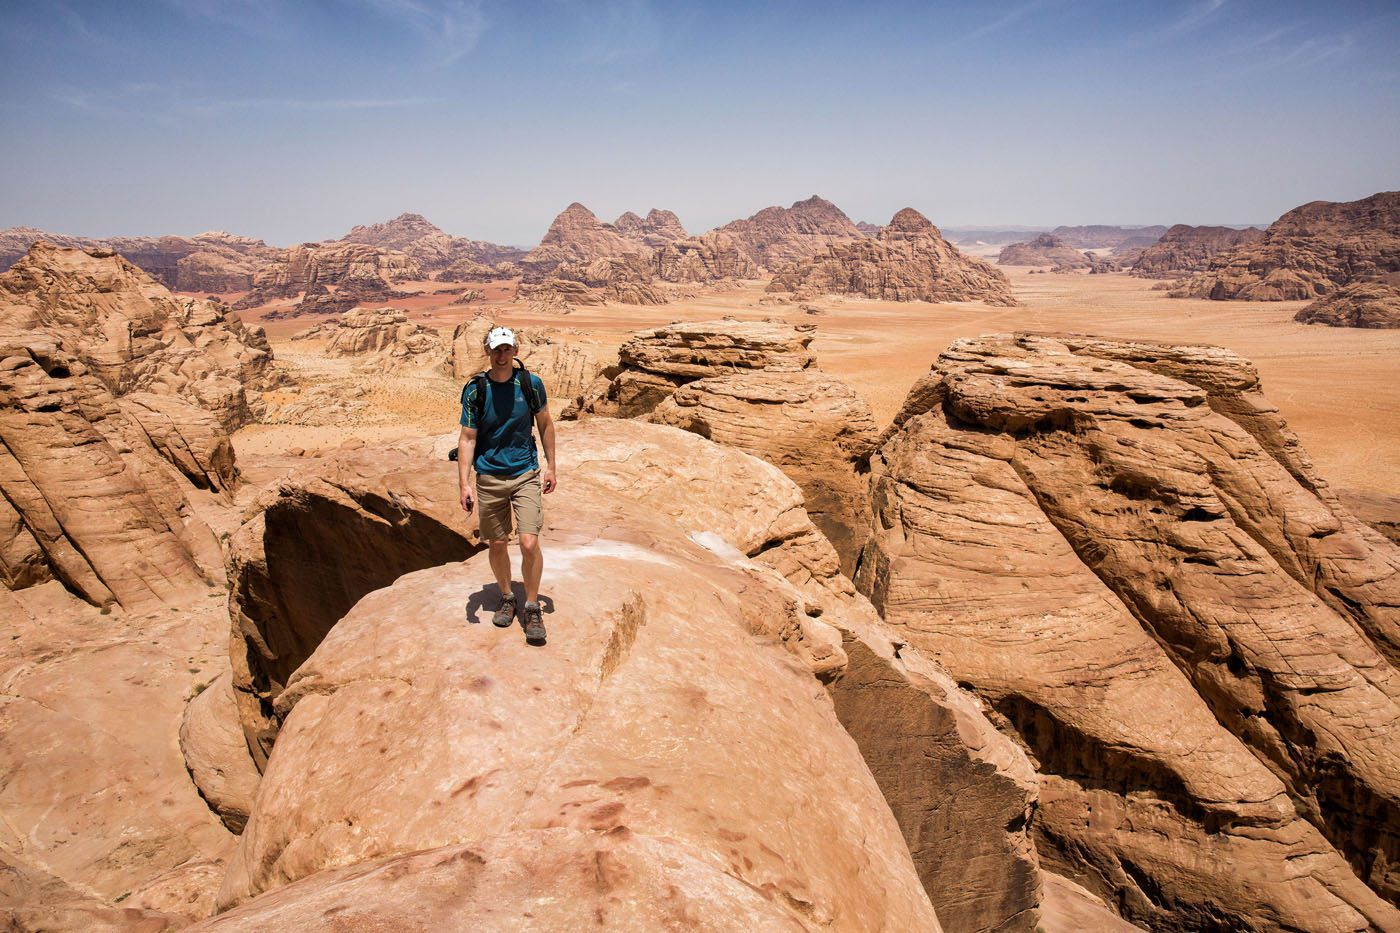 Hiking Wadi Rum to Jebel Burdah